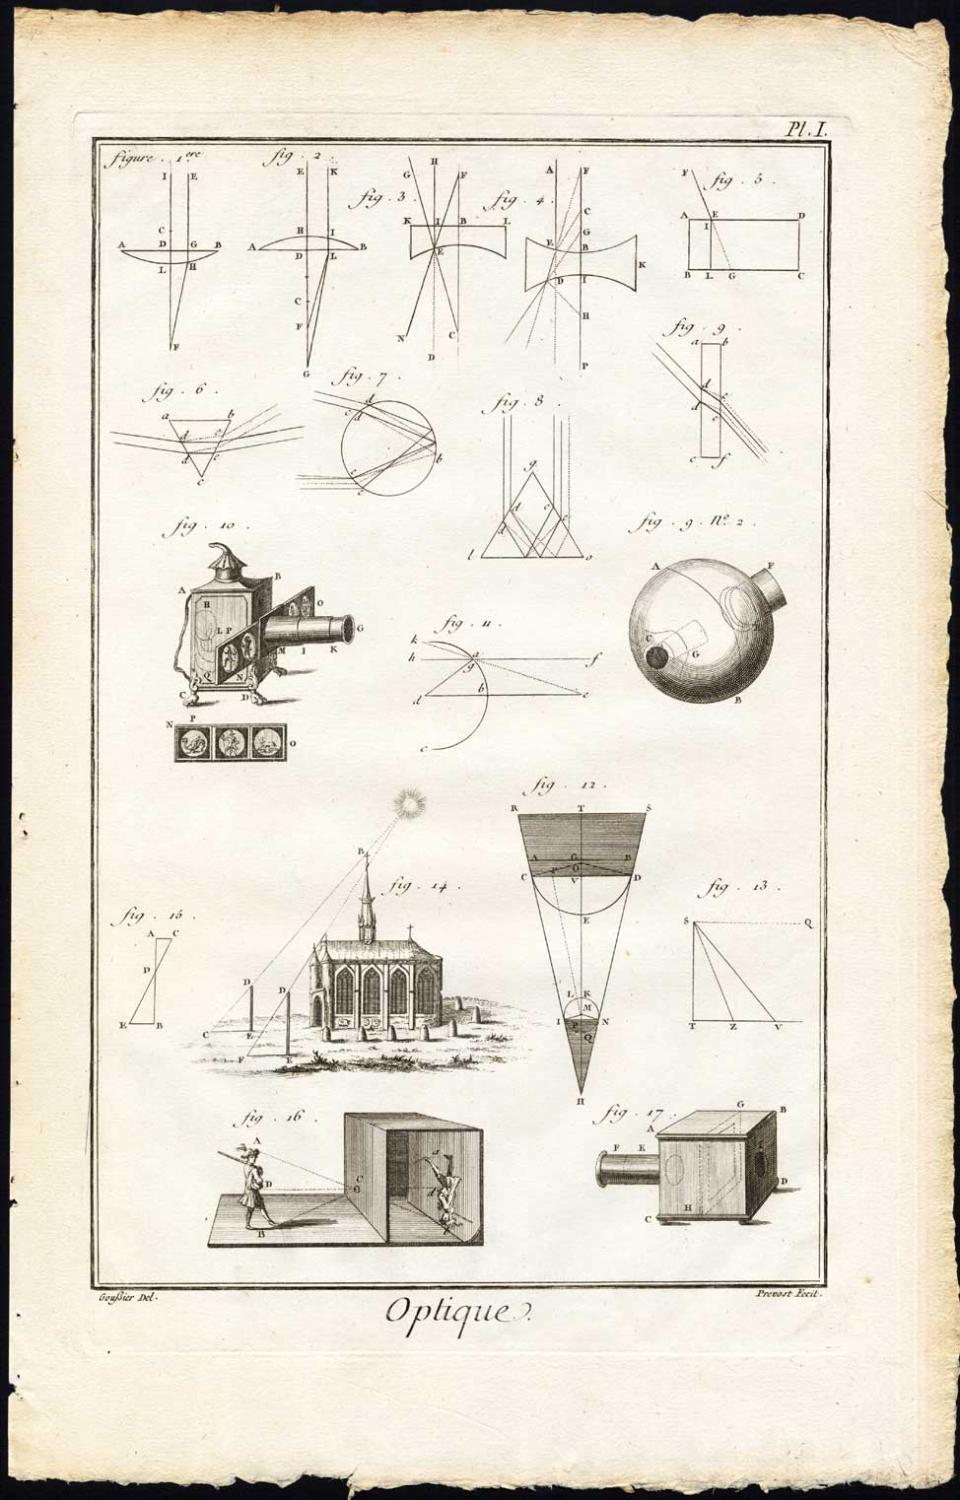 6 Antique Prints-OPTICS-SCIENCE-MATHEMATICS-Diderot-Prevost-1751 6 Plates : 'Optique'. (Optics.) Complete set of 6 plates. These plates deal with the science of optics including: slides projector, camera, microscope